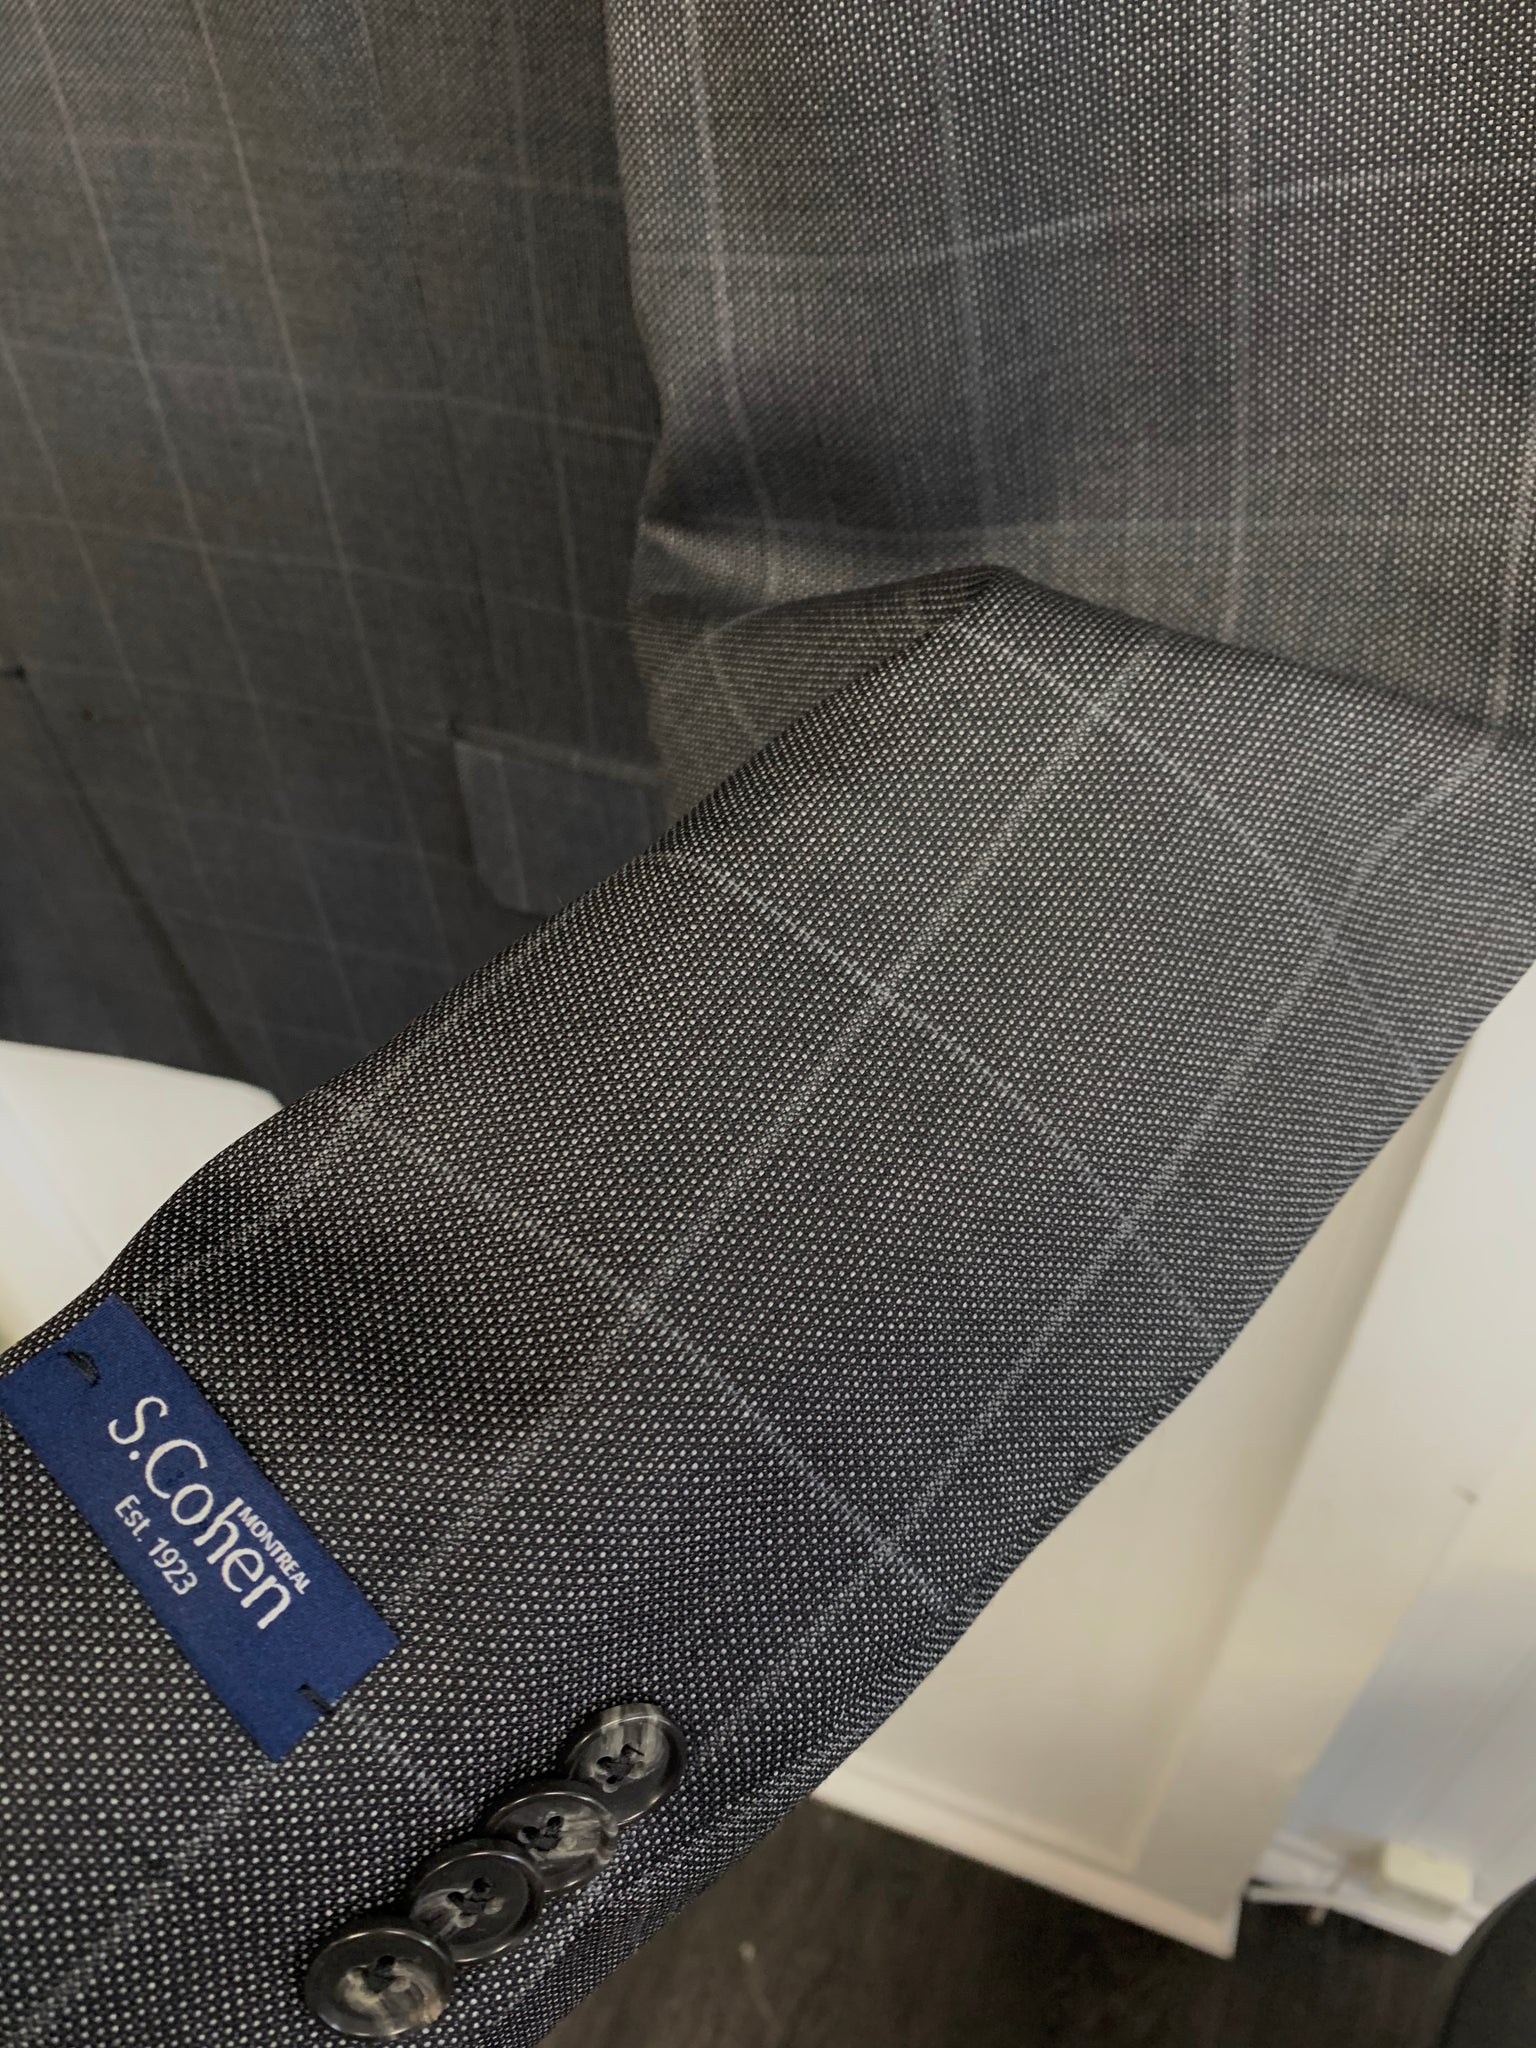 S. Cohen Super 130 Wool Suit- 97-3646 (Charcoal Gray Windowpane)